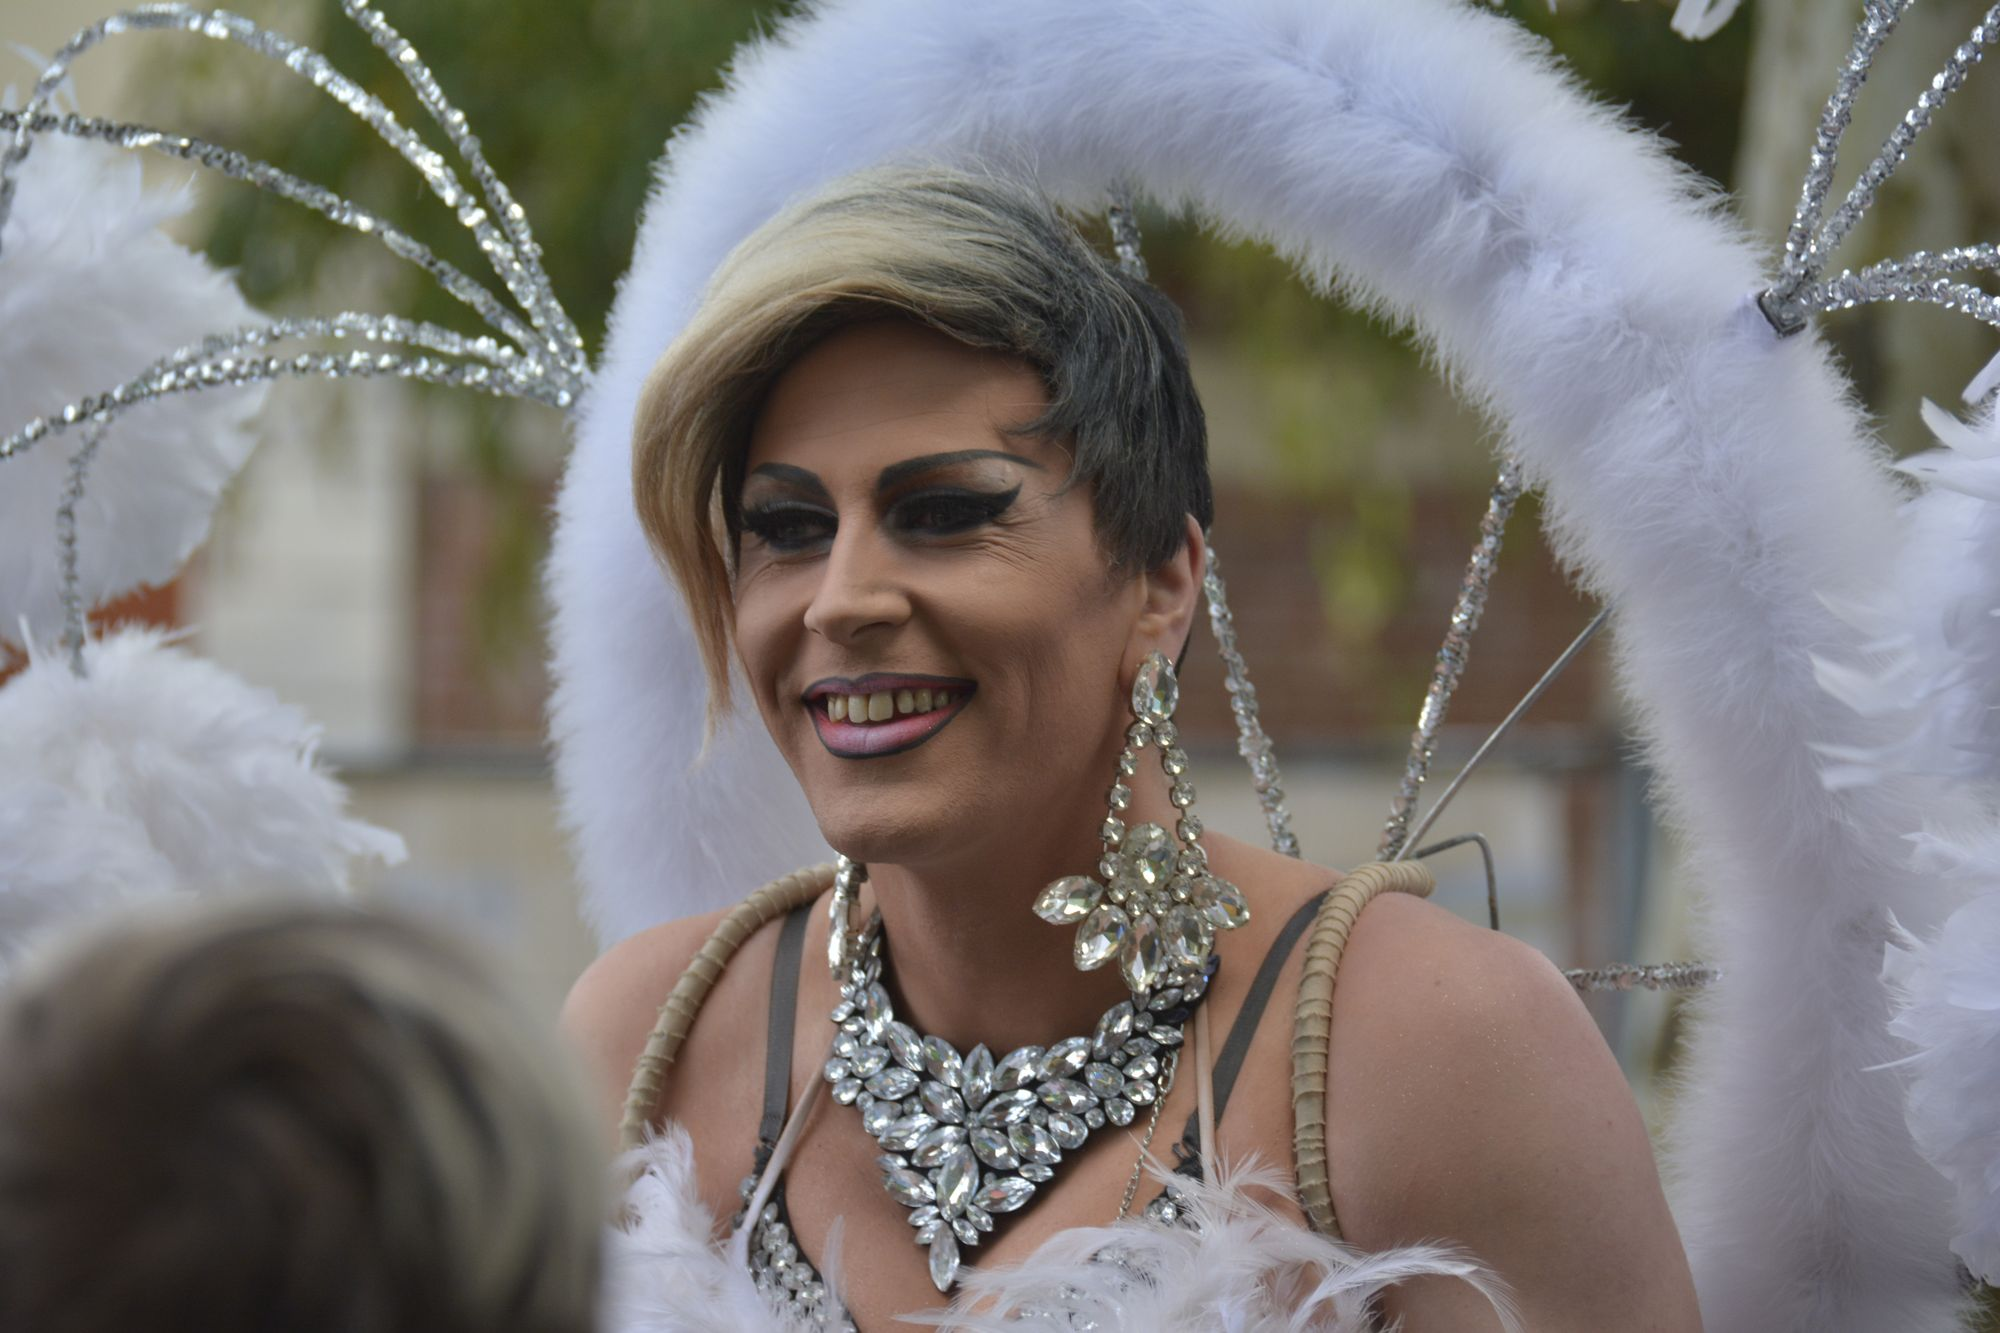 arras-pride-parade-2019_03